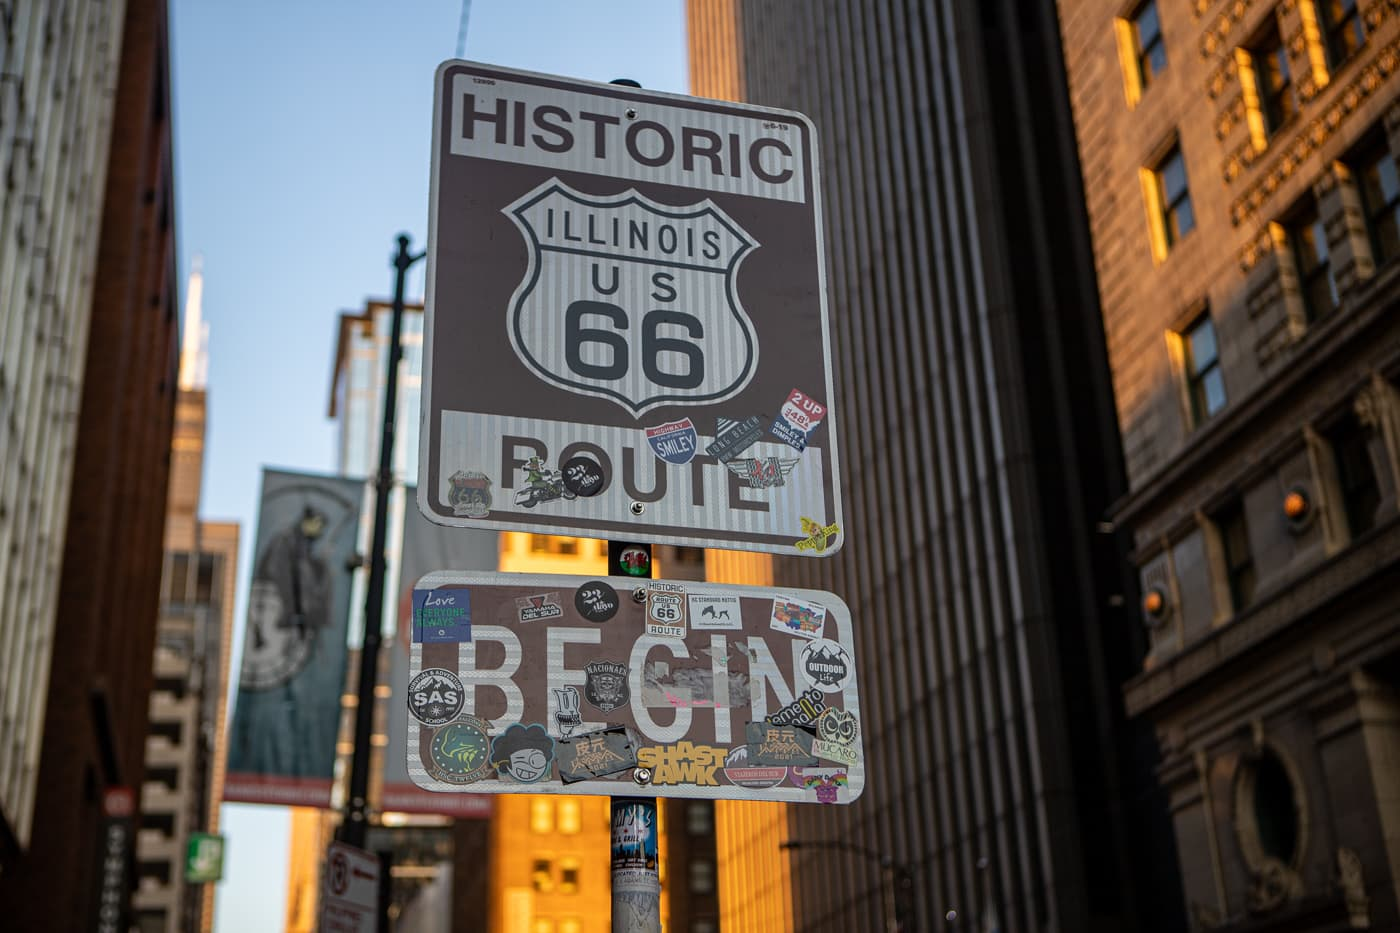 Historic Route 66 Begin Sign in Chicago, Illinois